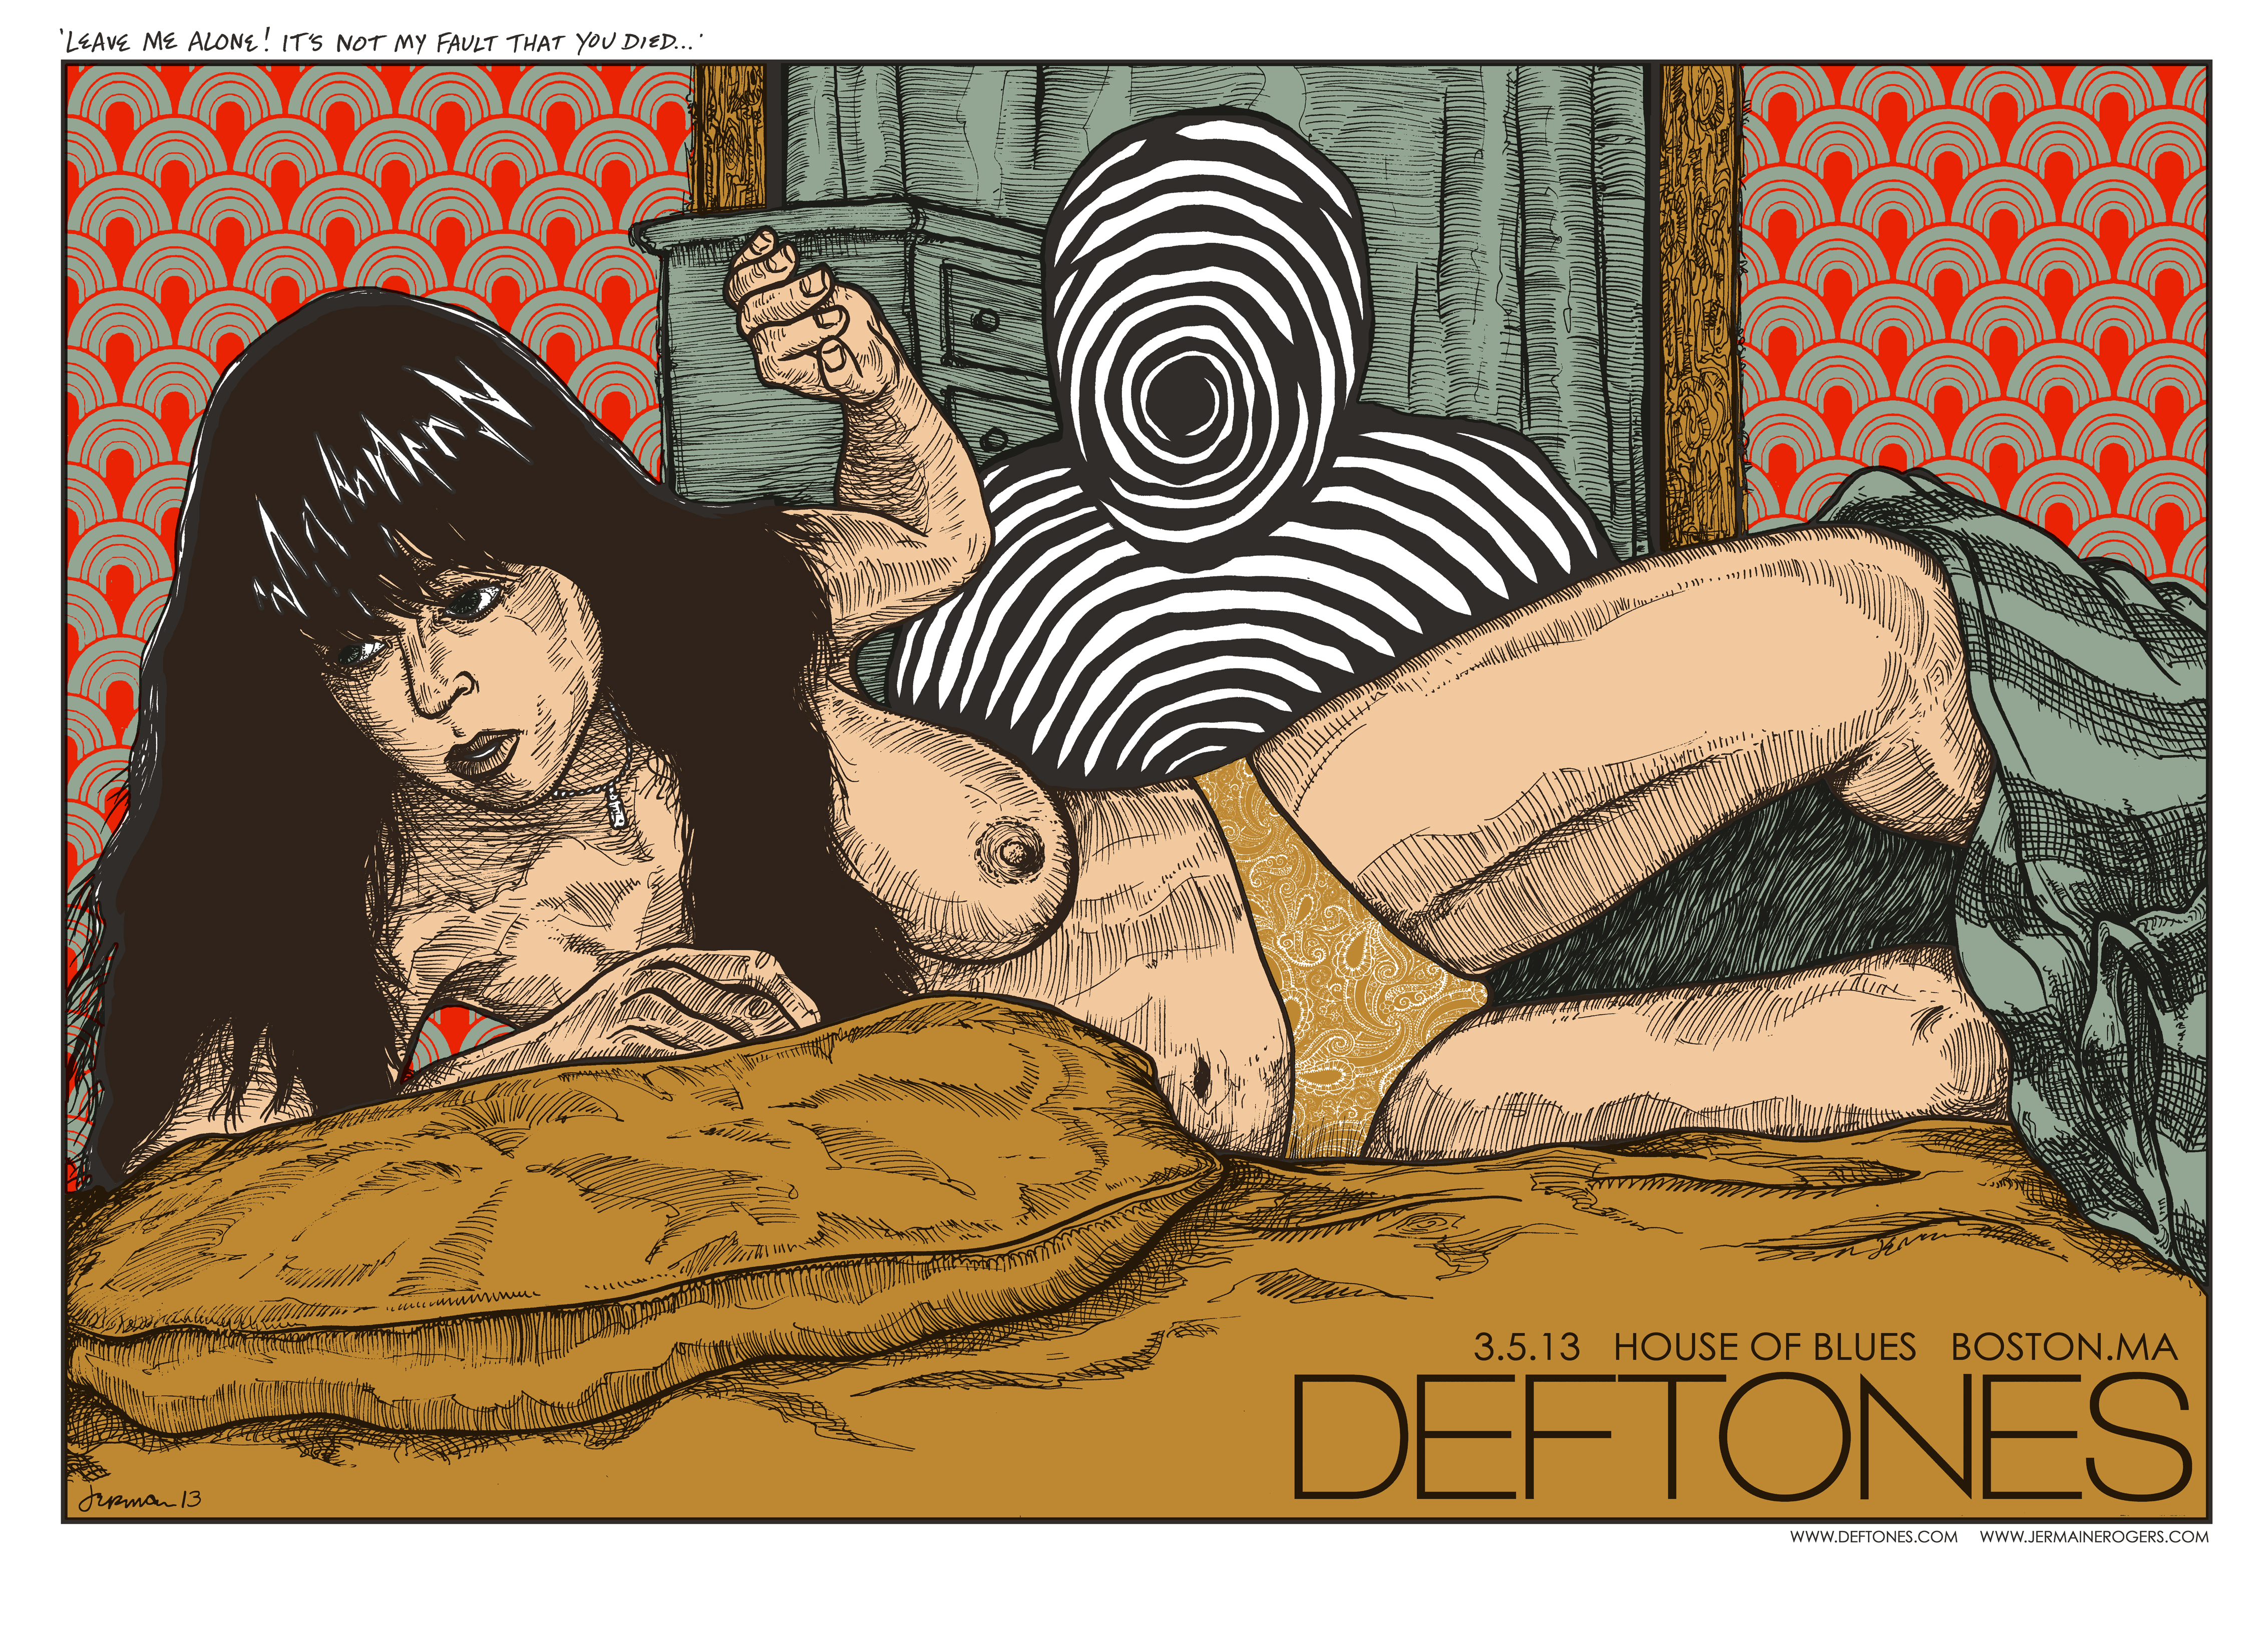 DEFTONES (Boston 2013) Studio Prints!